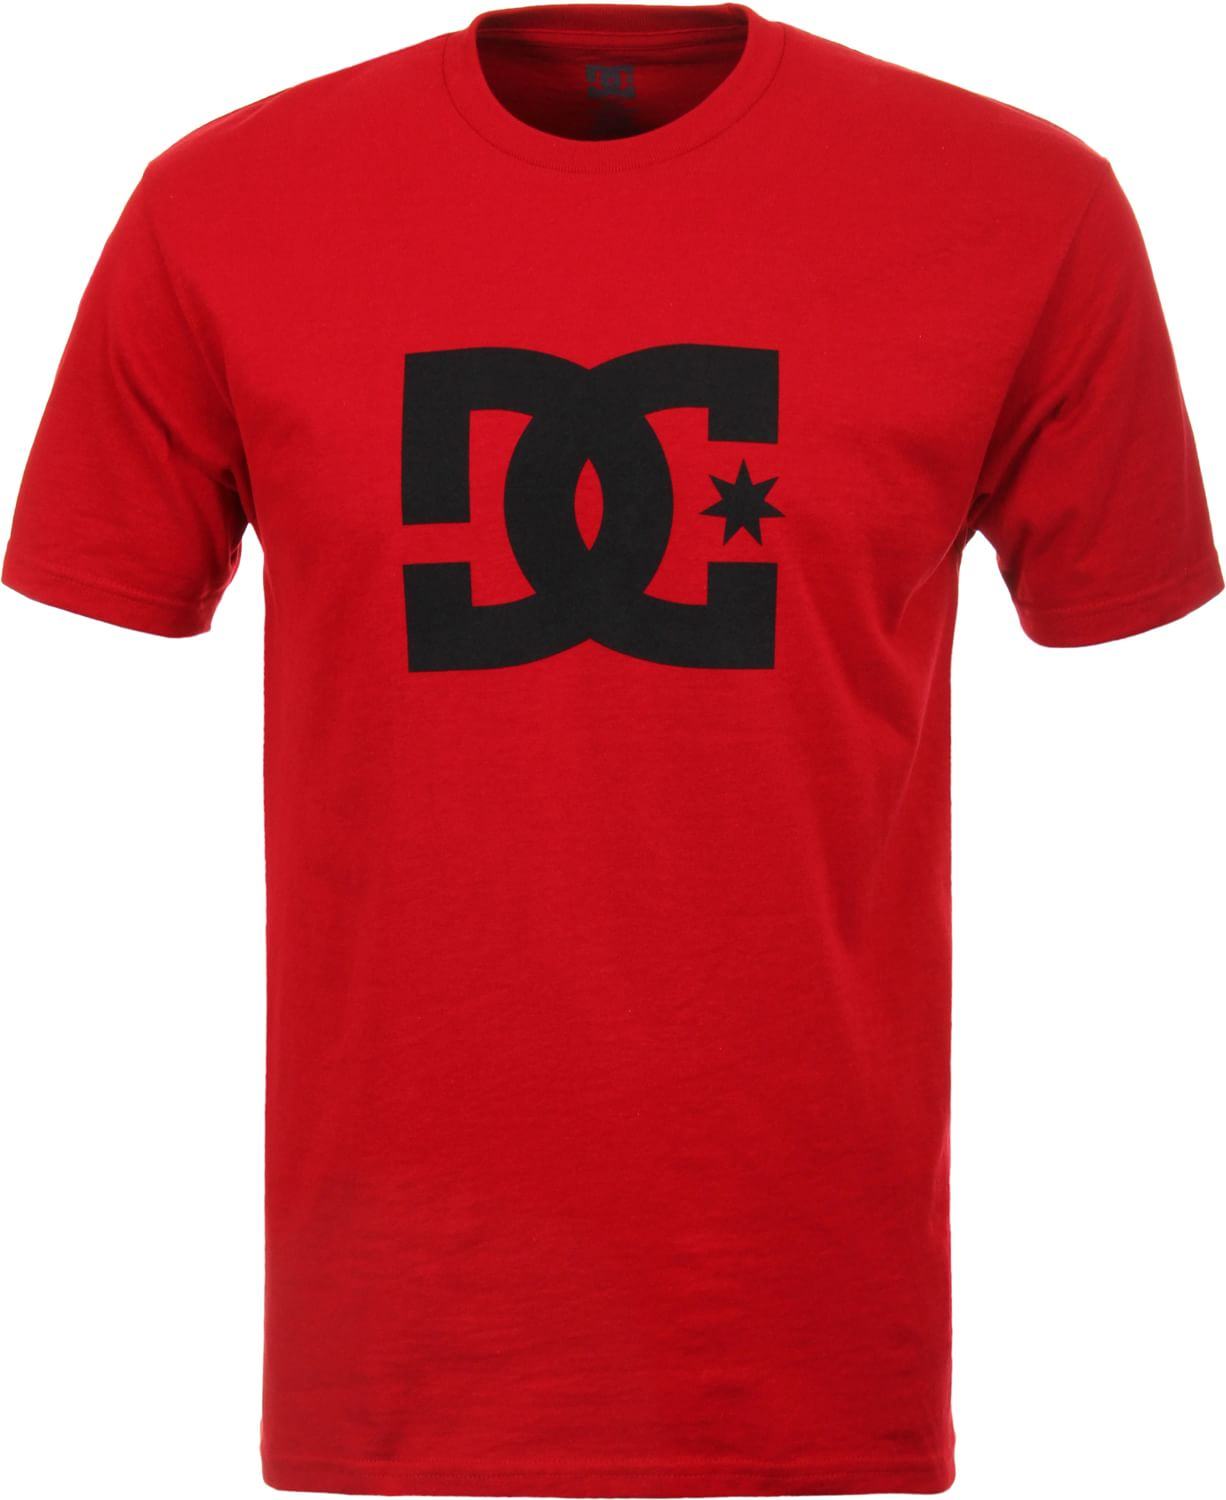 Dc shoes star t shirt free shipping for Cardinal color t shirts